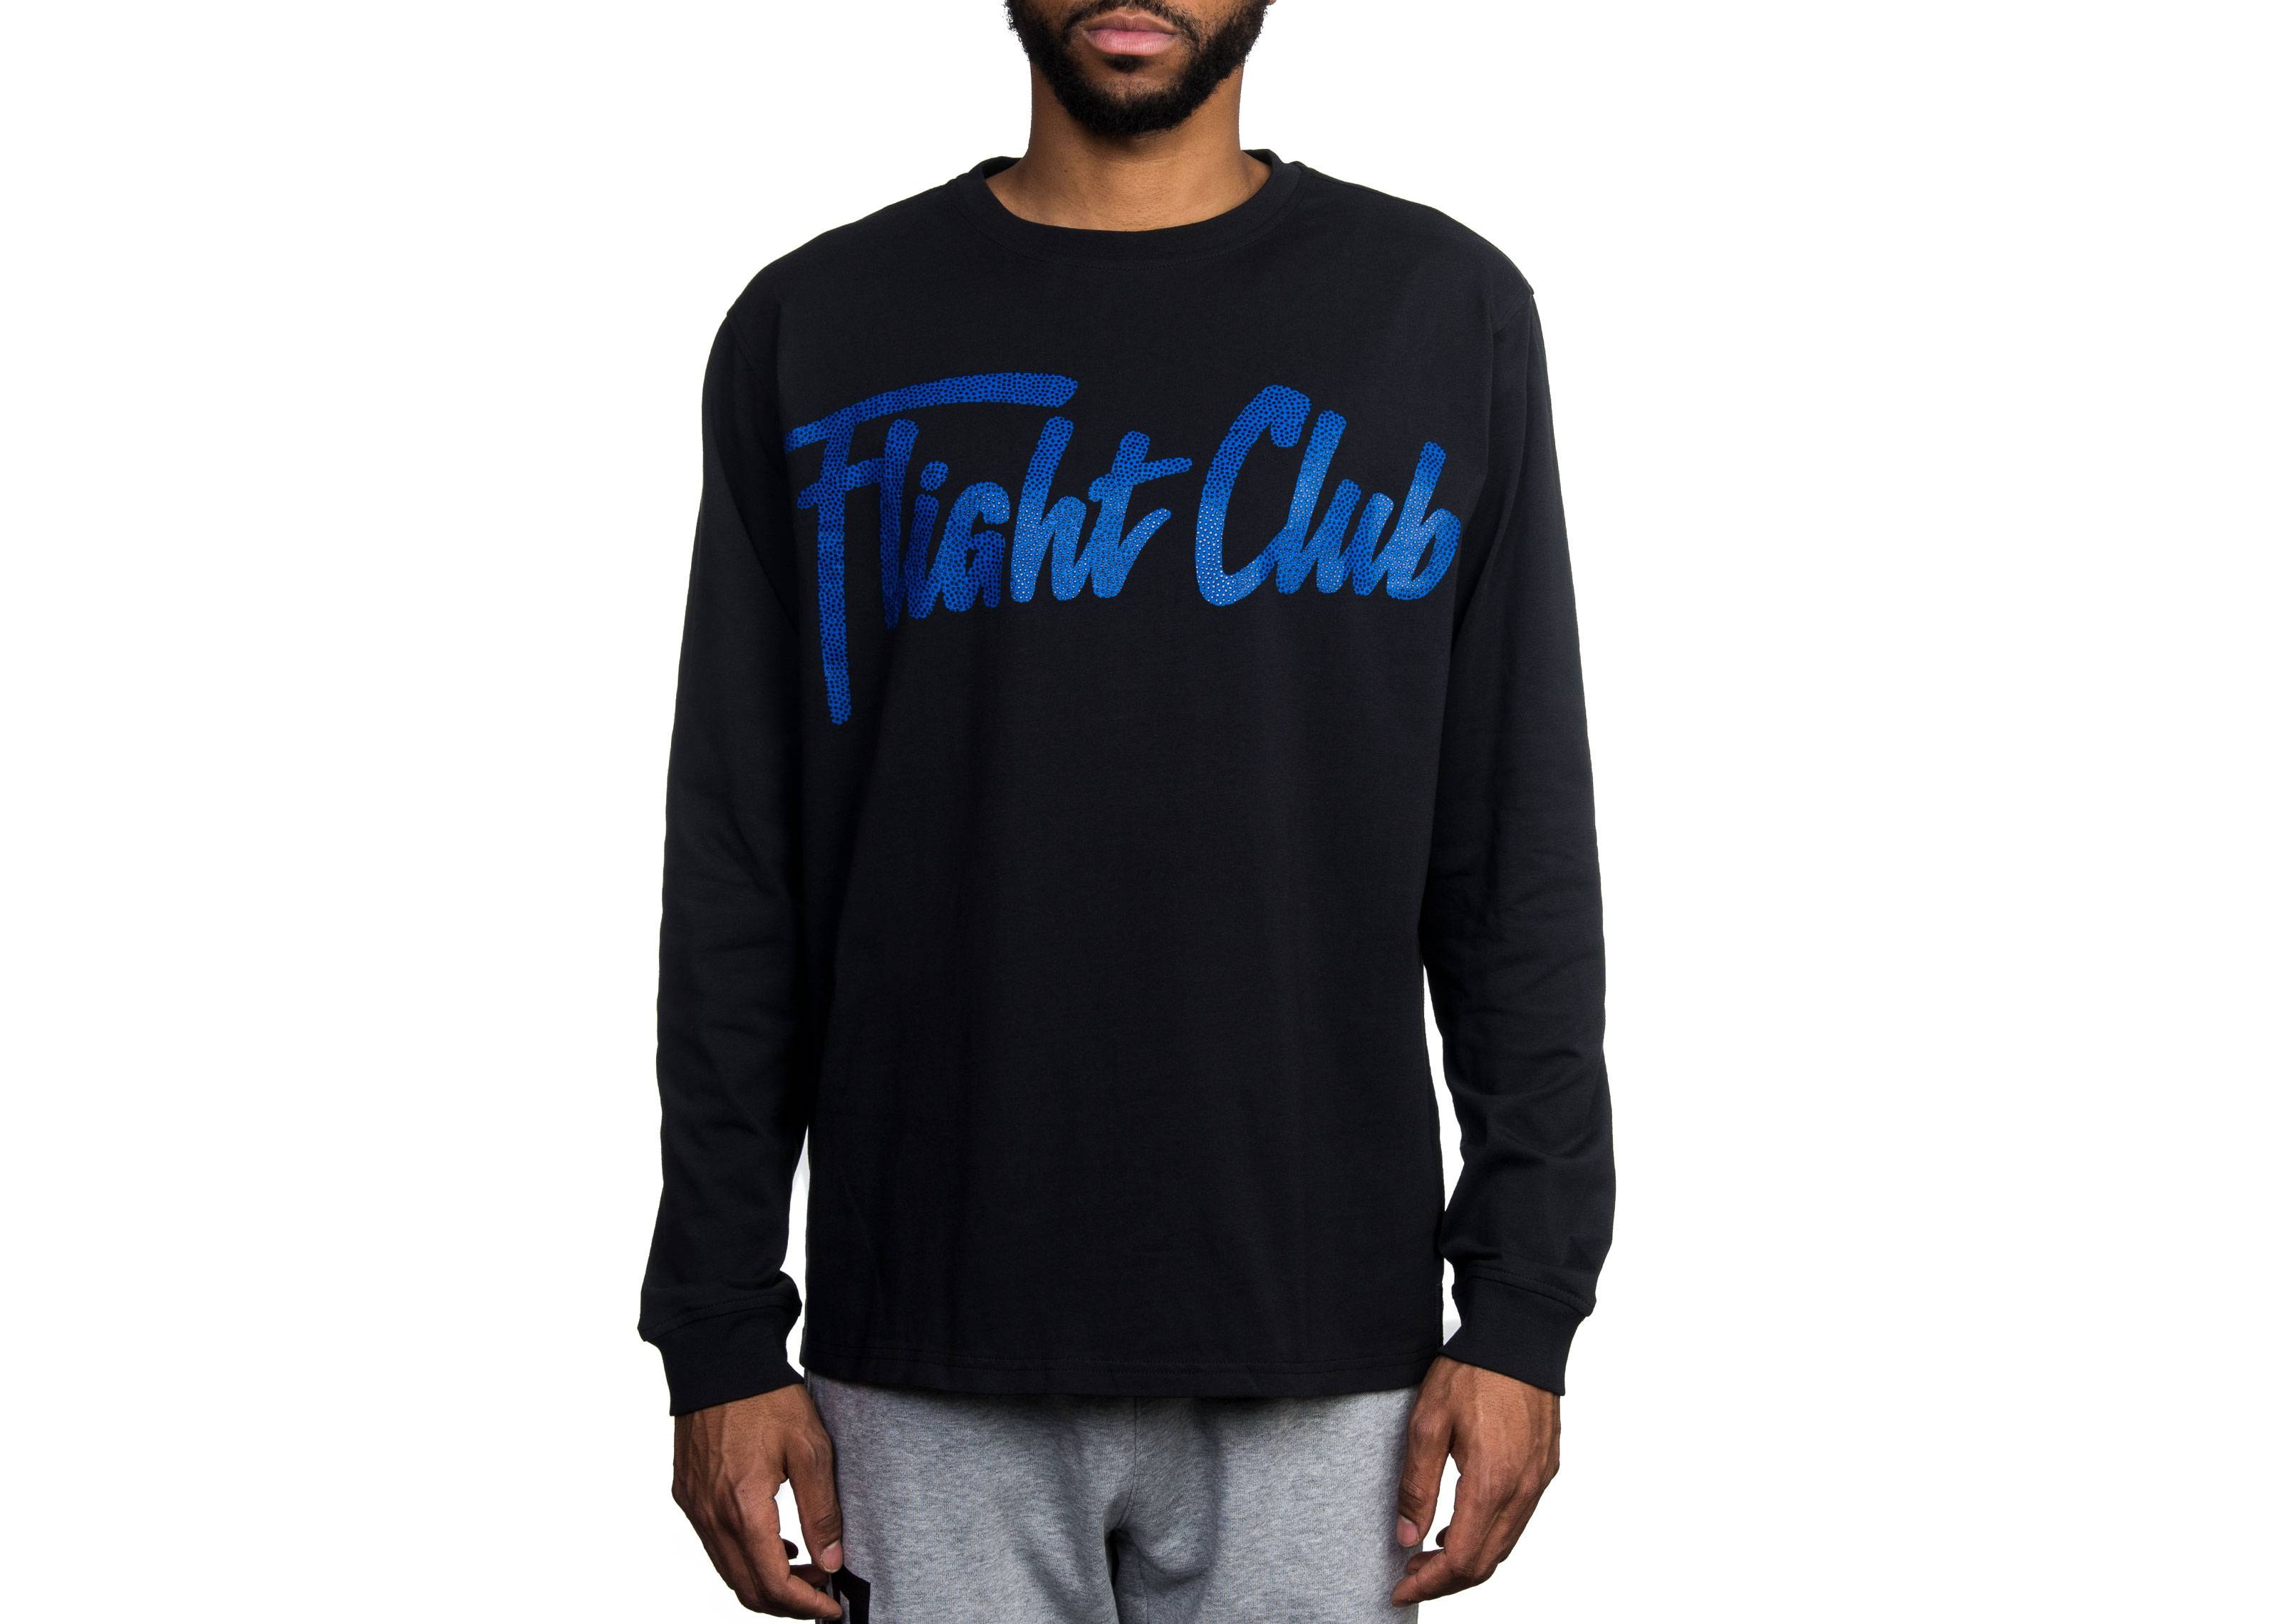 0ad49dade50c Script LS T-Shirt - Flight Club - FCT24 17 - black royal basketball ...